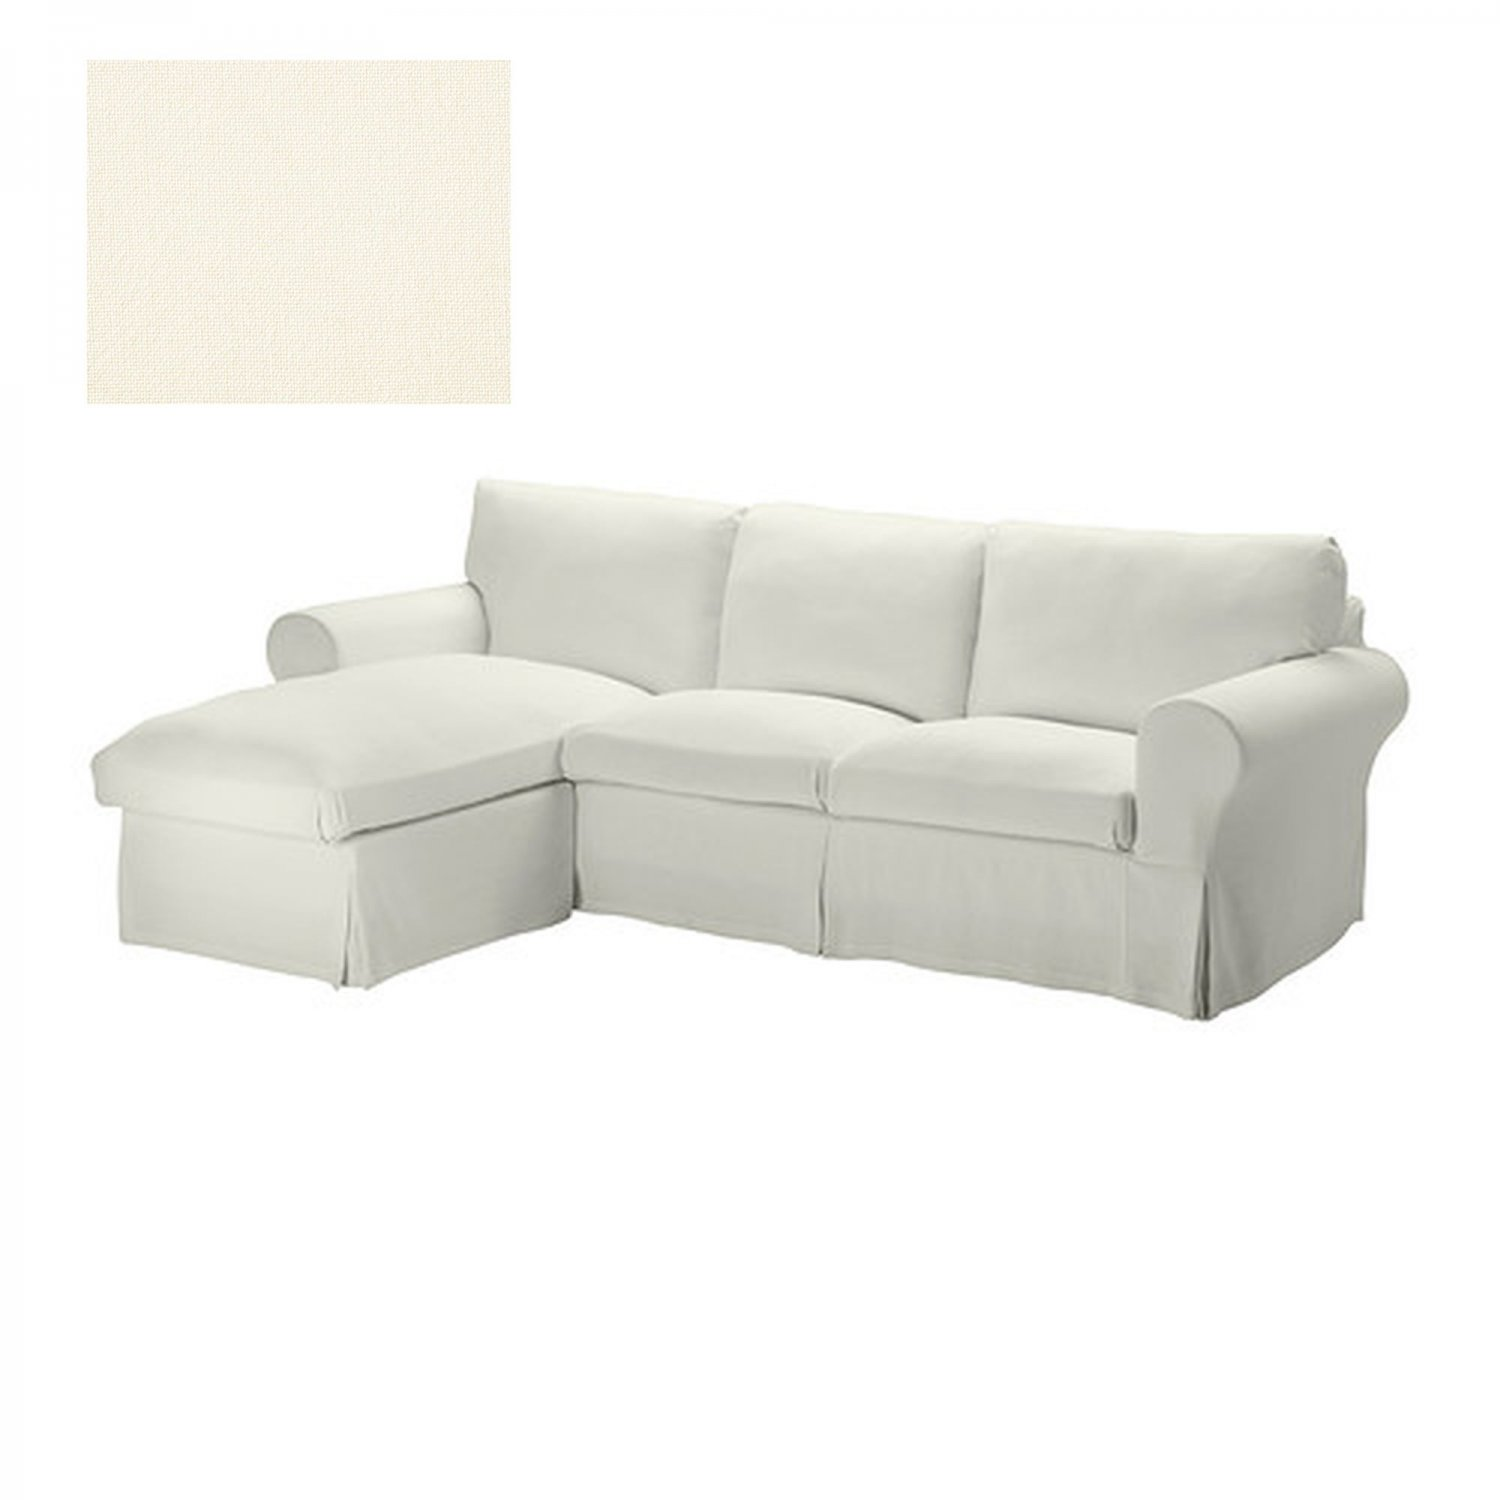 Ikea ektorp loveseat sofa w chaise slipcover 3 seat sectional cover stenasa white sten sa linen White loveseat slipcovers